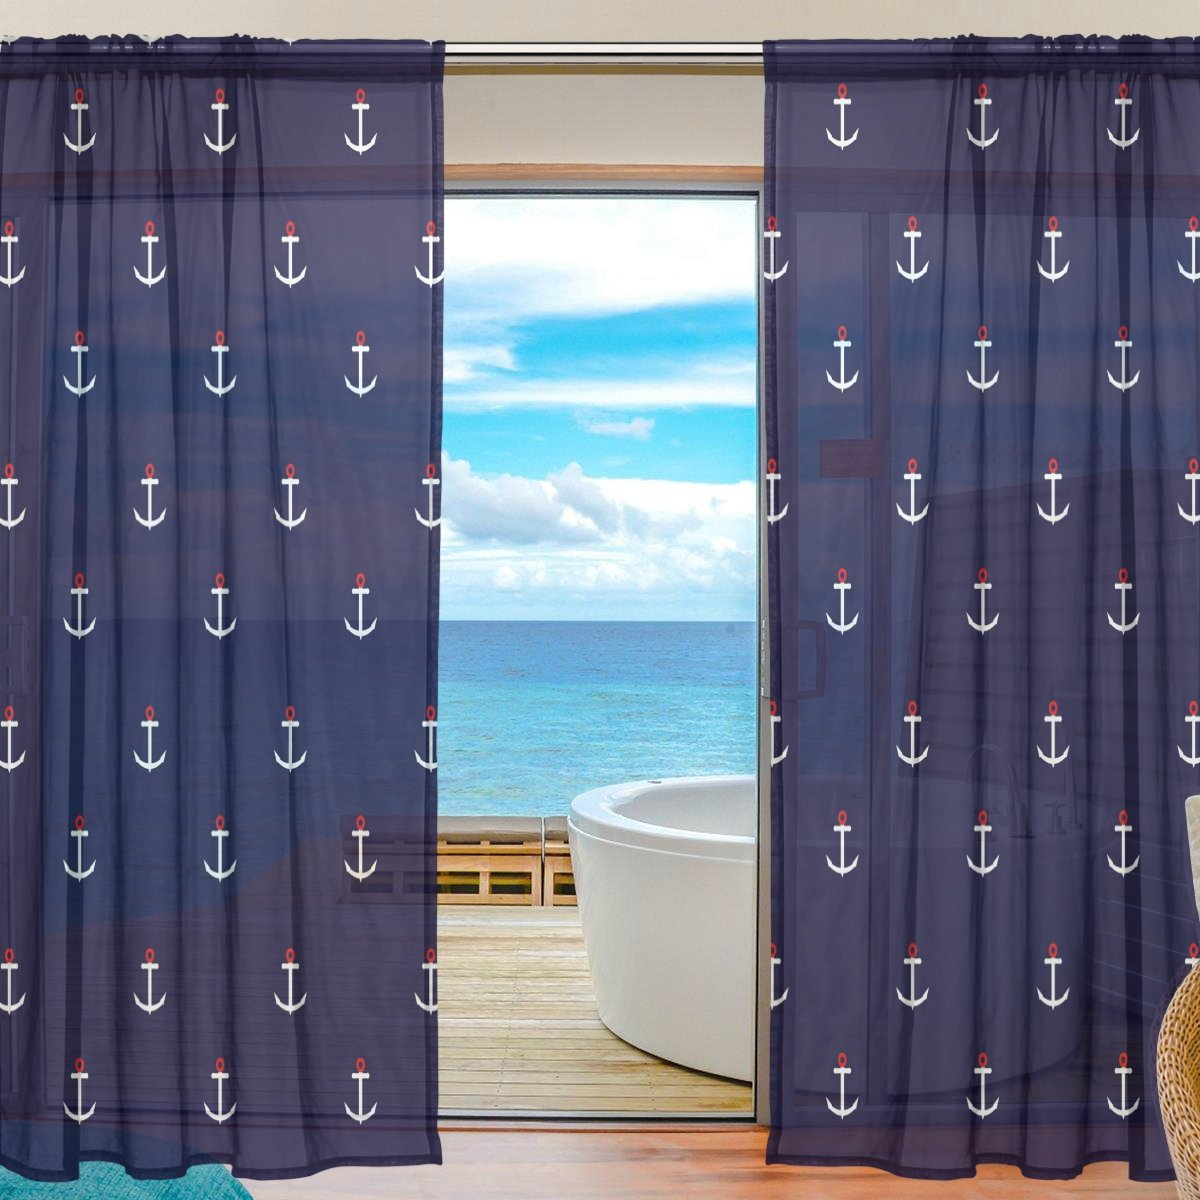 "ALAZA Sheer Window Curtains Voile Panels Abstract Nautical Anchor for Living Room Bedroom Kids Room Curtains Polyester 55""Wx78""L Per Panel Set of 2 Panels La Random"